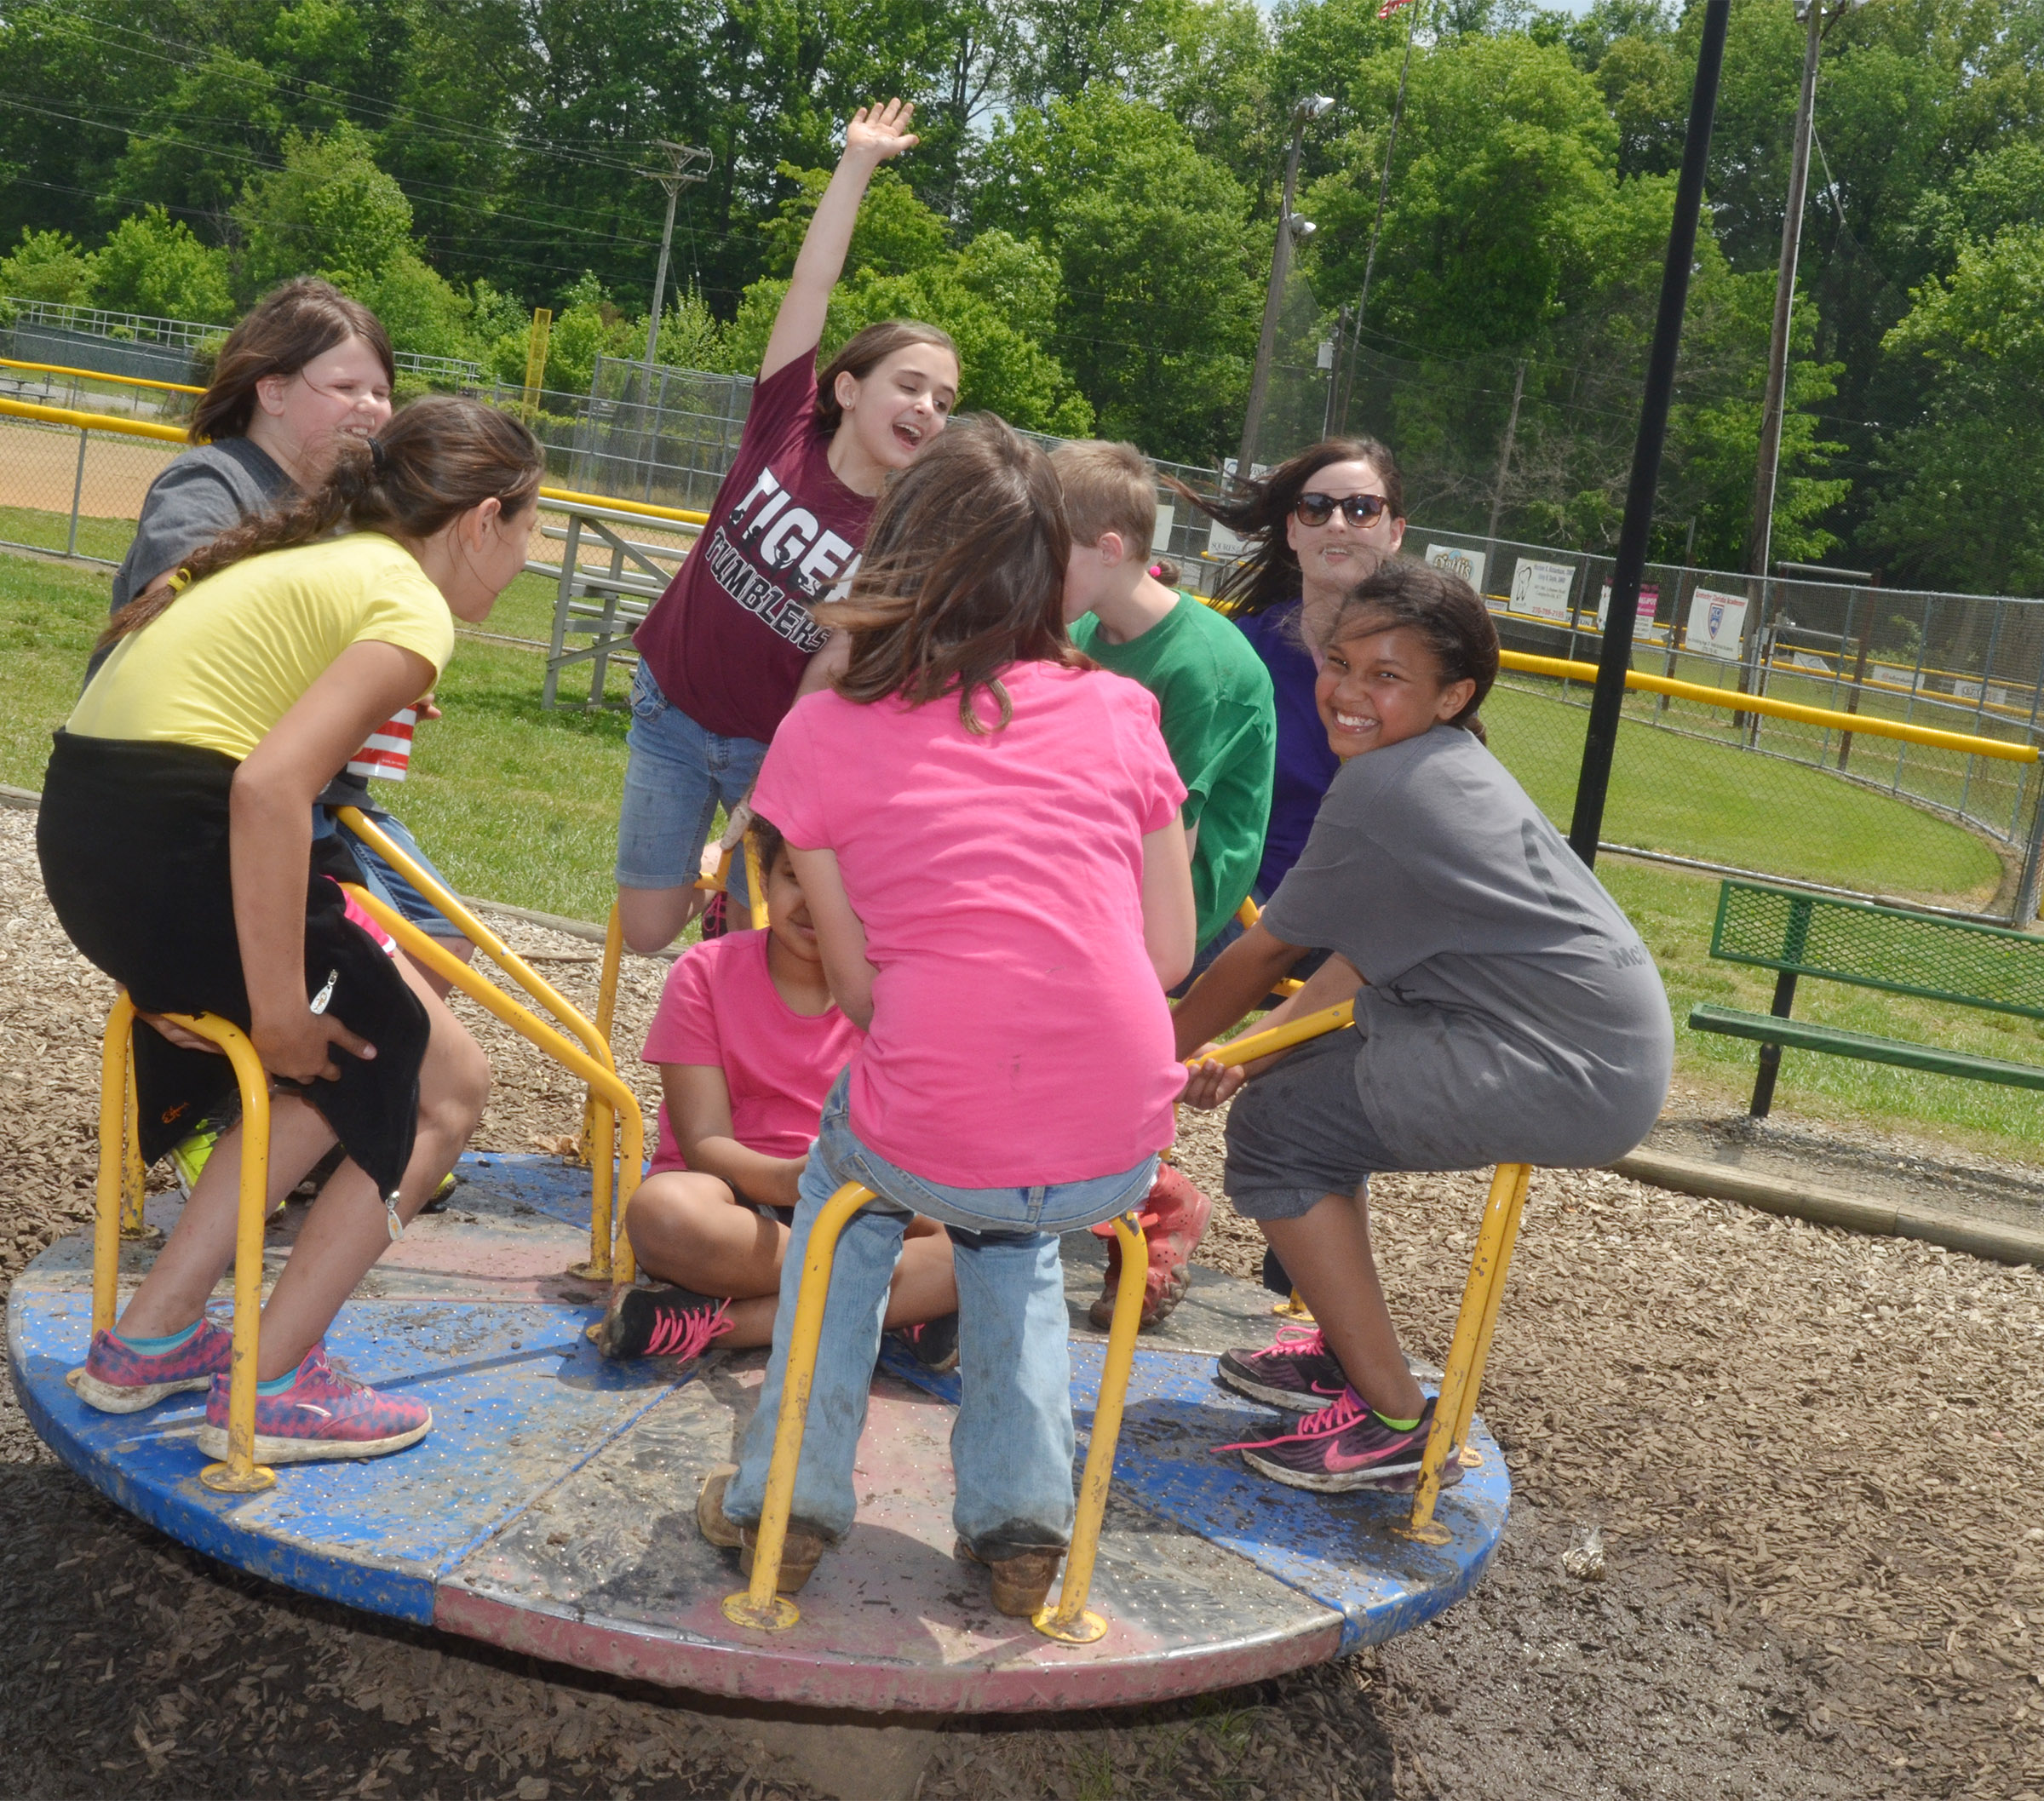 CMS fourth-grader Anna Floyd, center, and her friends laugh as their teacher, Samantha Coomer, pushes them on the merry-go-round.